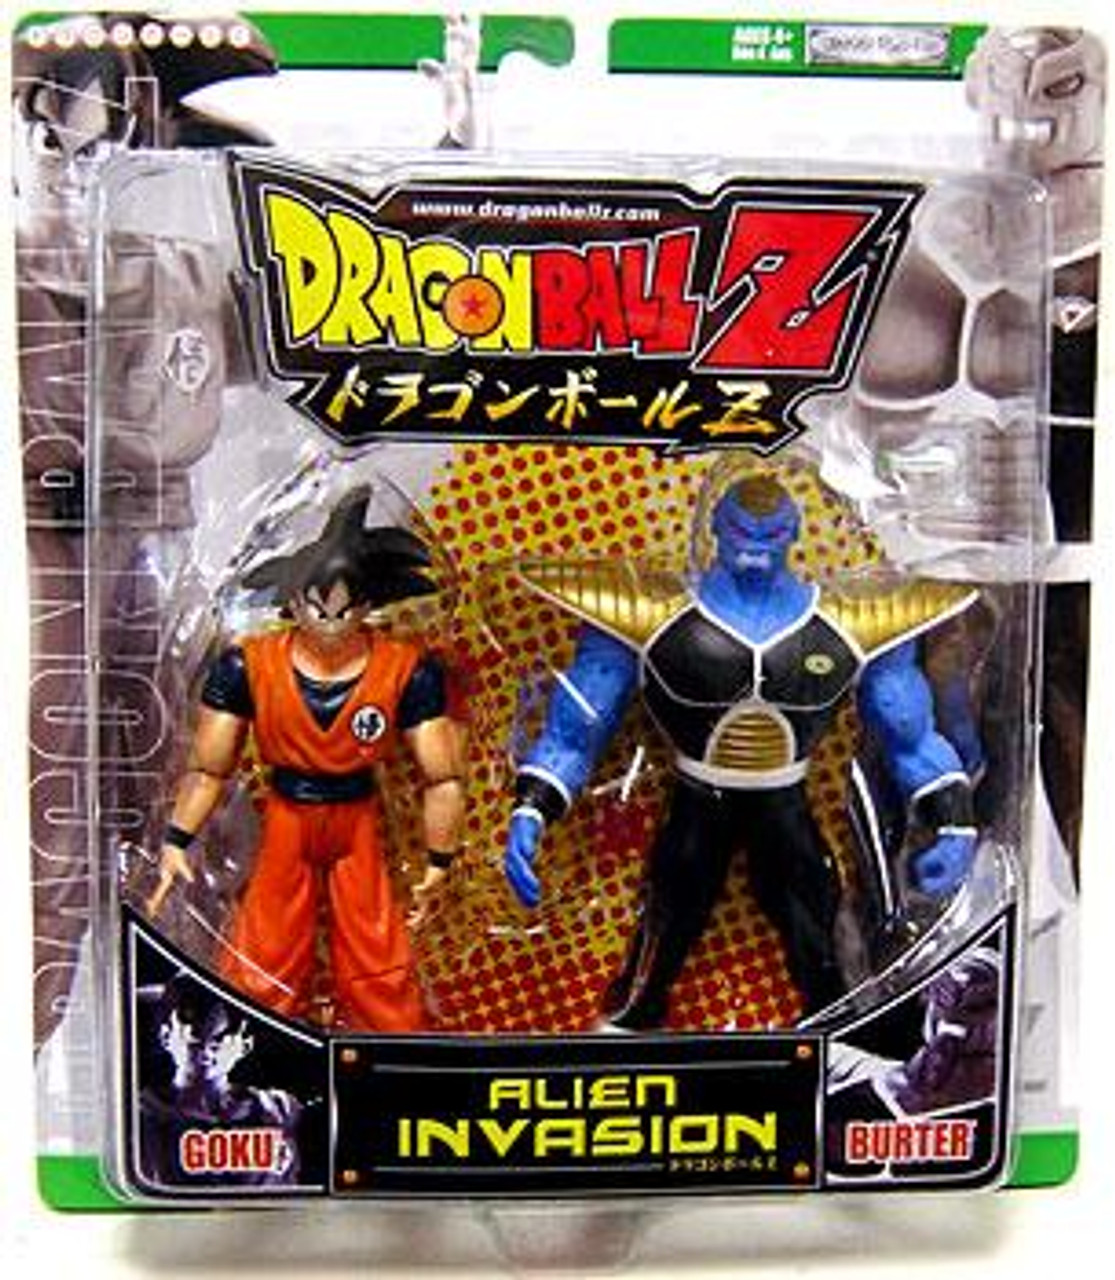 Dragon Ball Z Alien Invasion Goku vs. Burter Action Figure 2-Pack [Green Package]